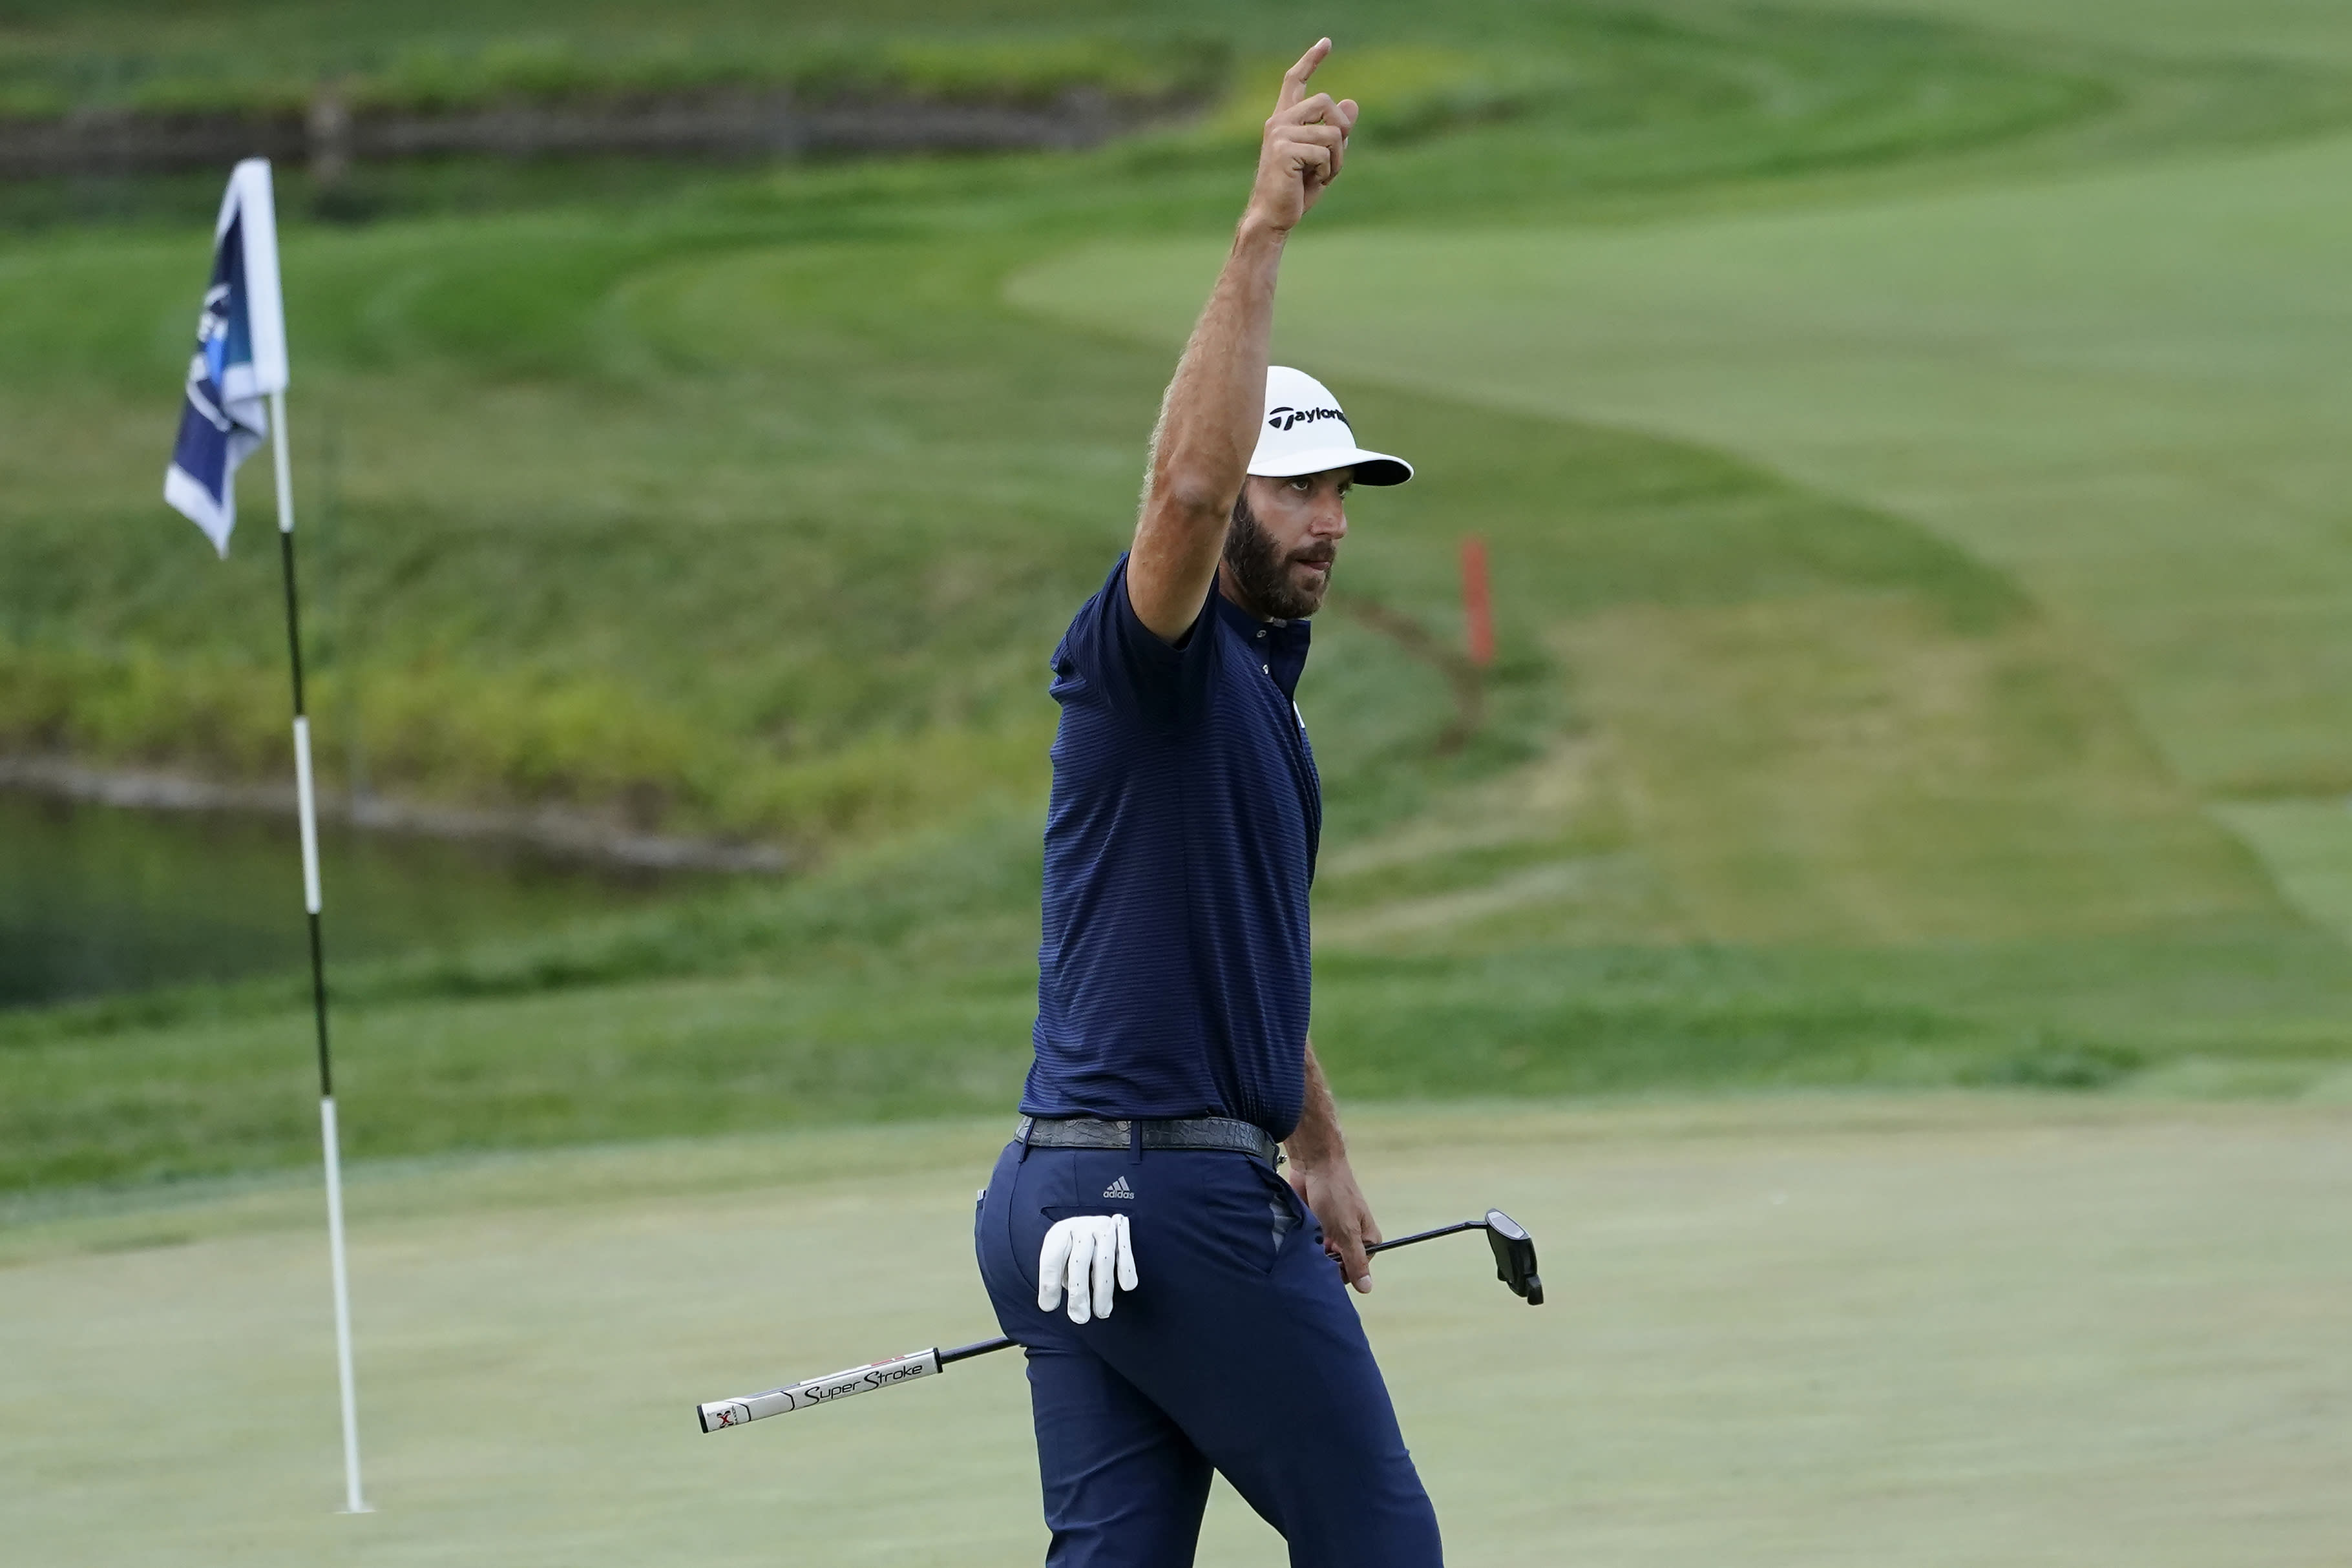 Dustin Johnson reacts after making a birdie putt on the 18th hole during the final round of the BMW Championship golf tournament at the Olympia Fields Country Club in Olympia Fields, Ill., Sunday, Aug. 30, 2020. (AP Photo/Charles Rex Arbogast)